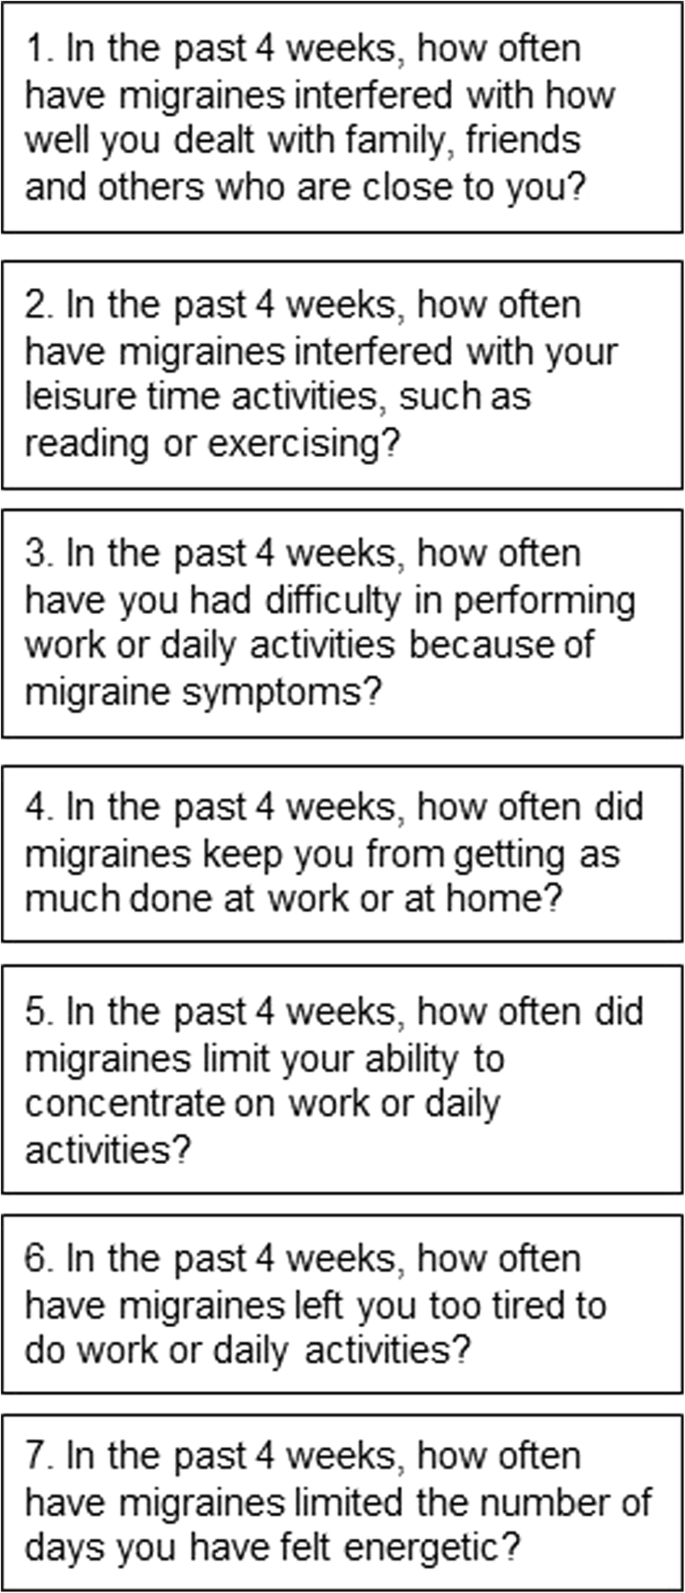 Content validity of the Migraine-Specific Quality of Life